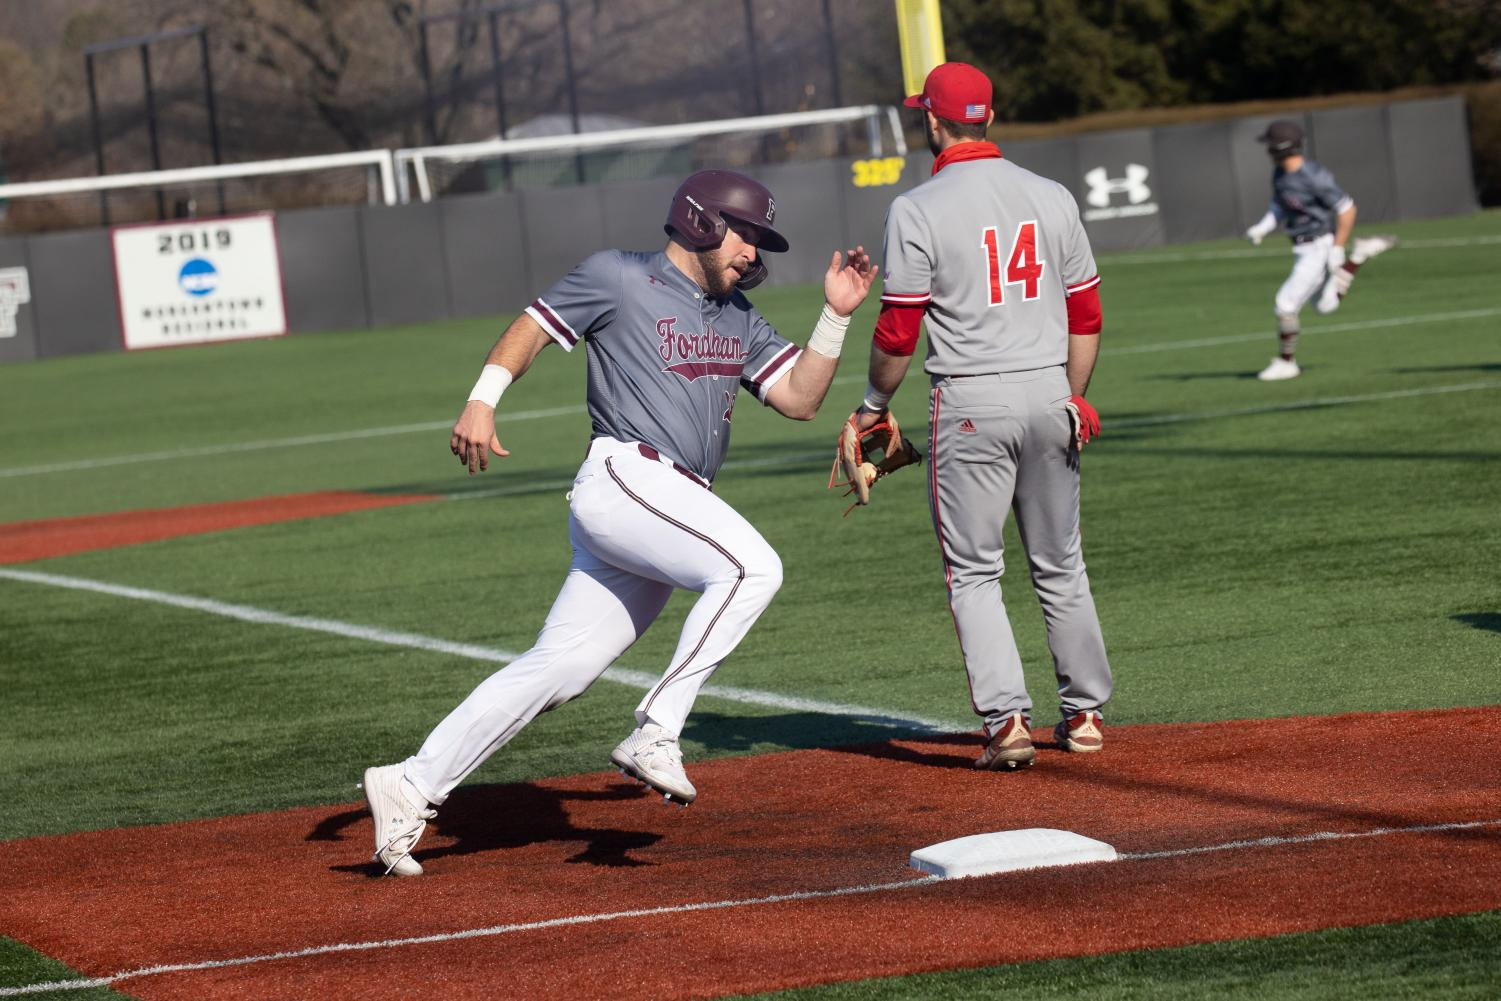 nick labella running in a game against sacred heart